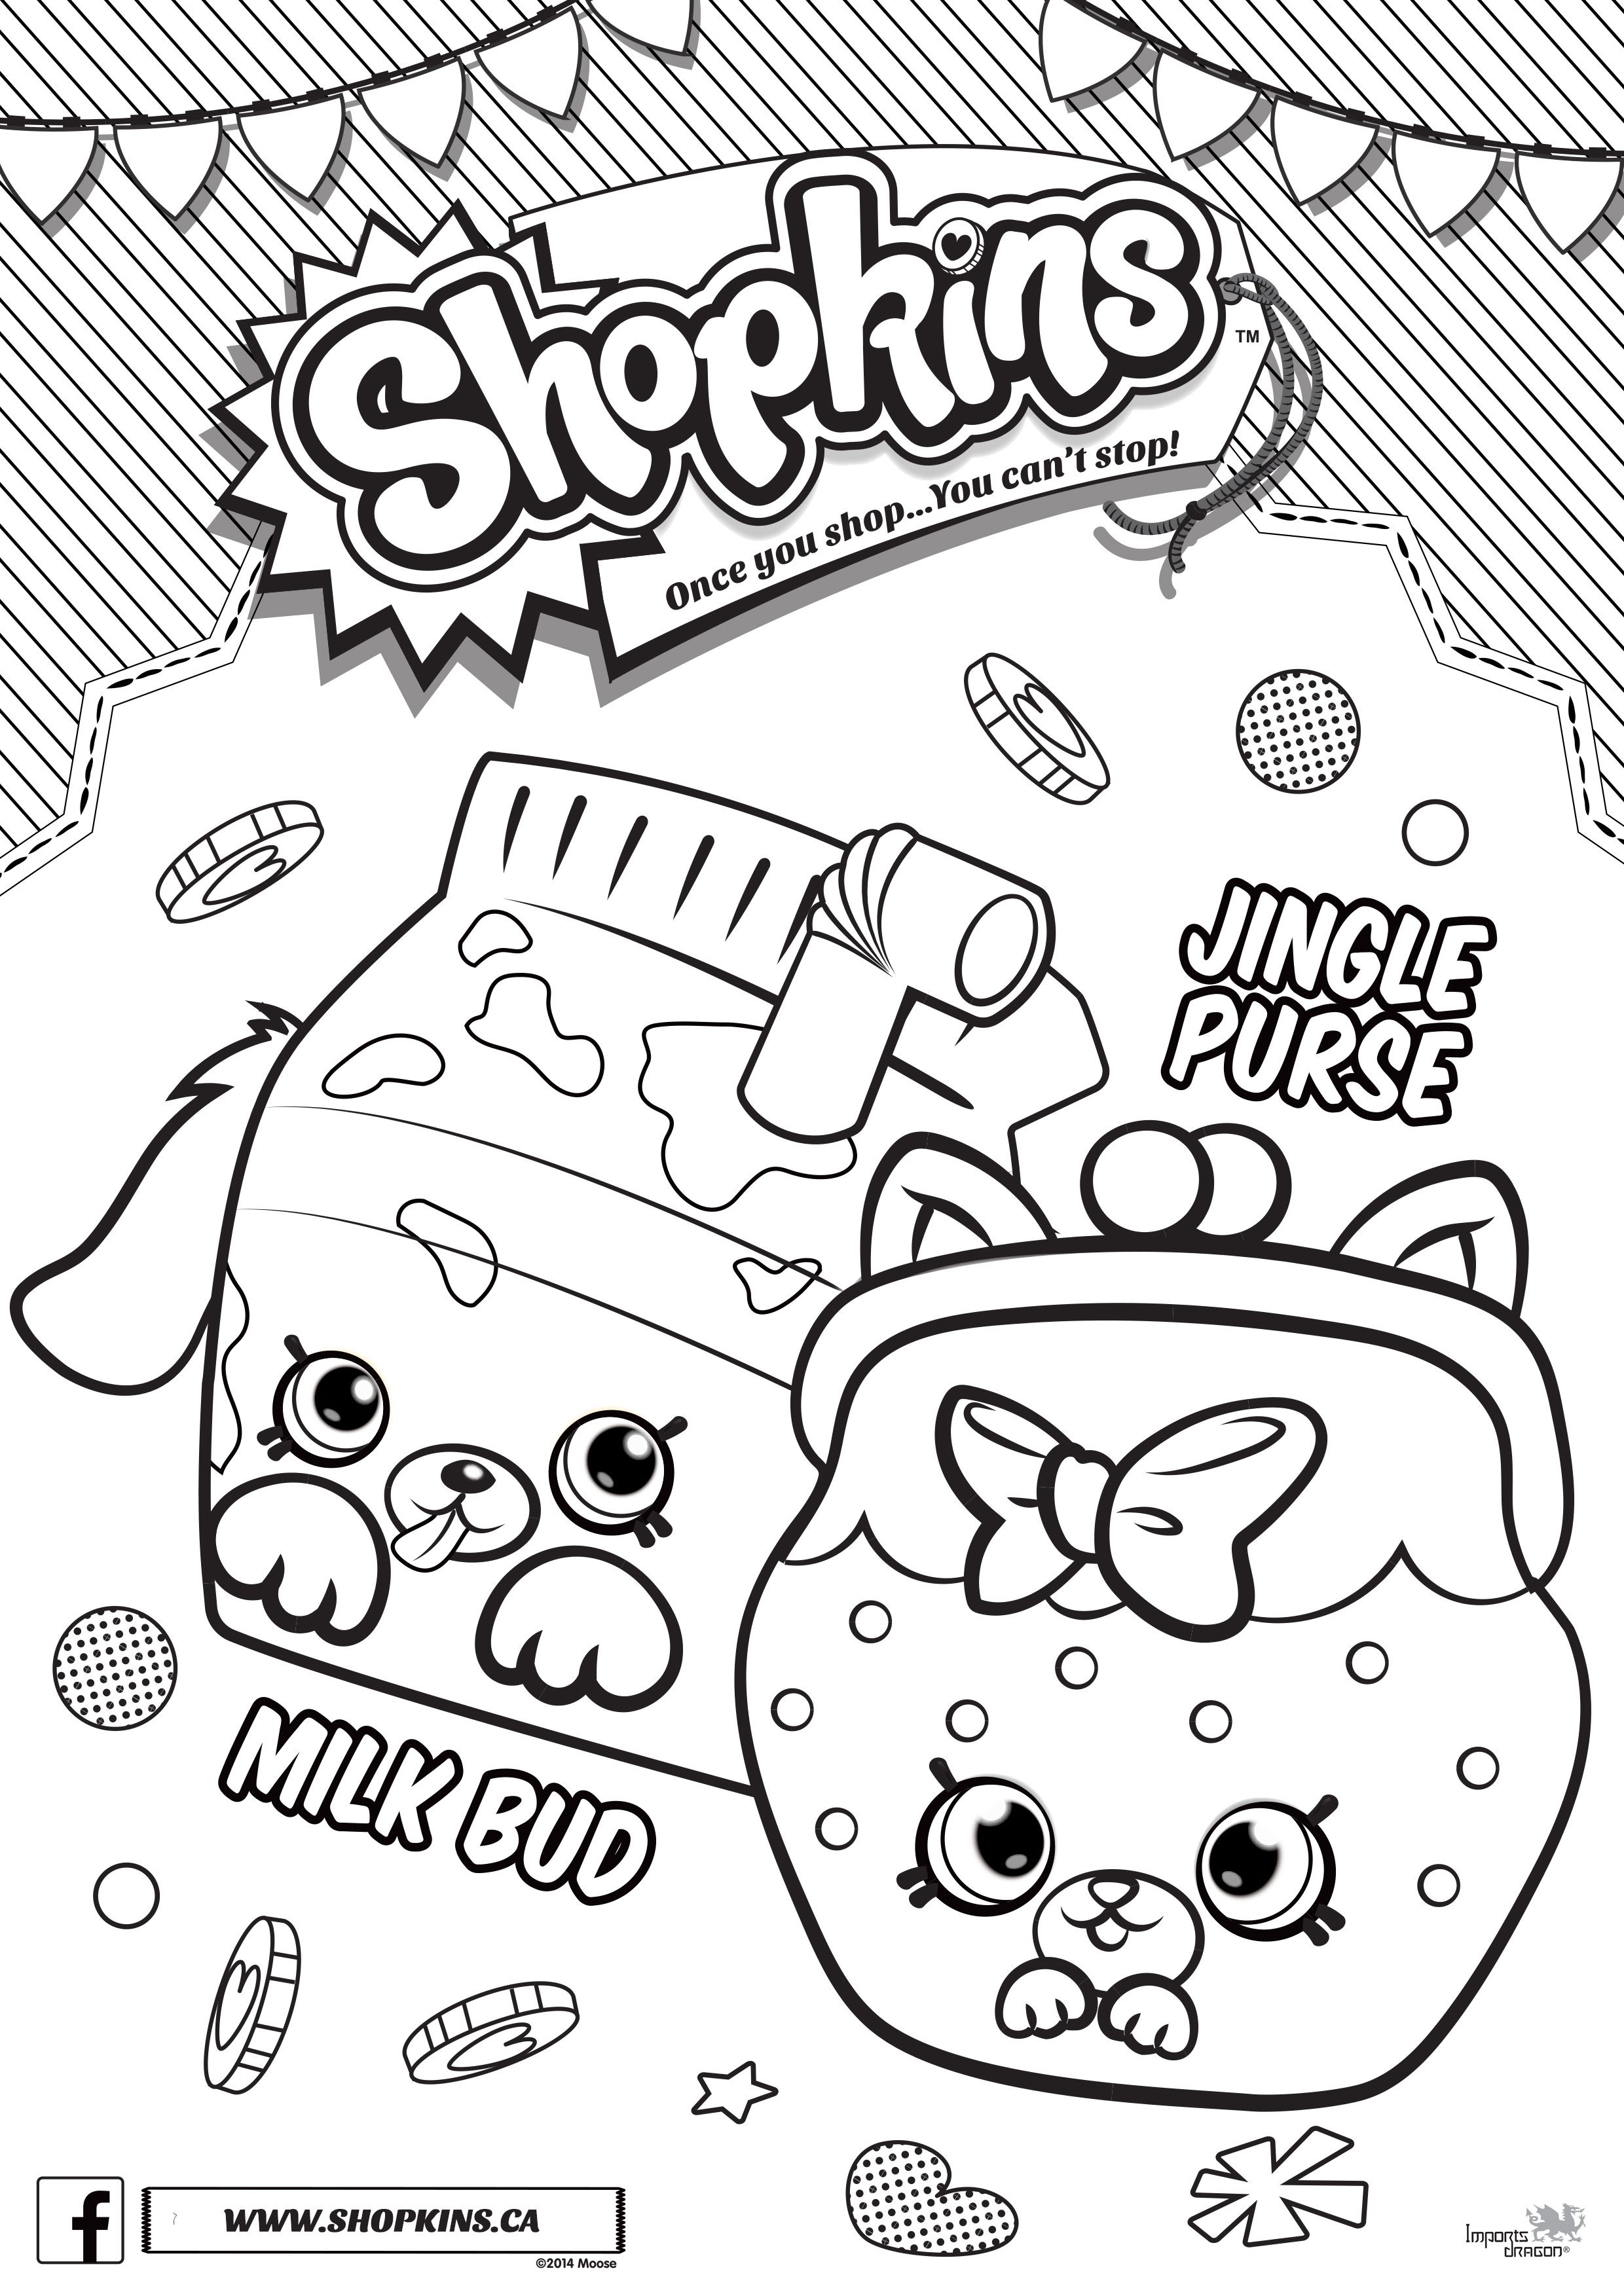 Shopkins Coloring Pages Coloring Pages Color Pgs For